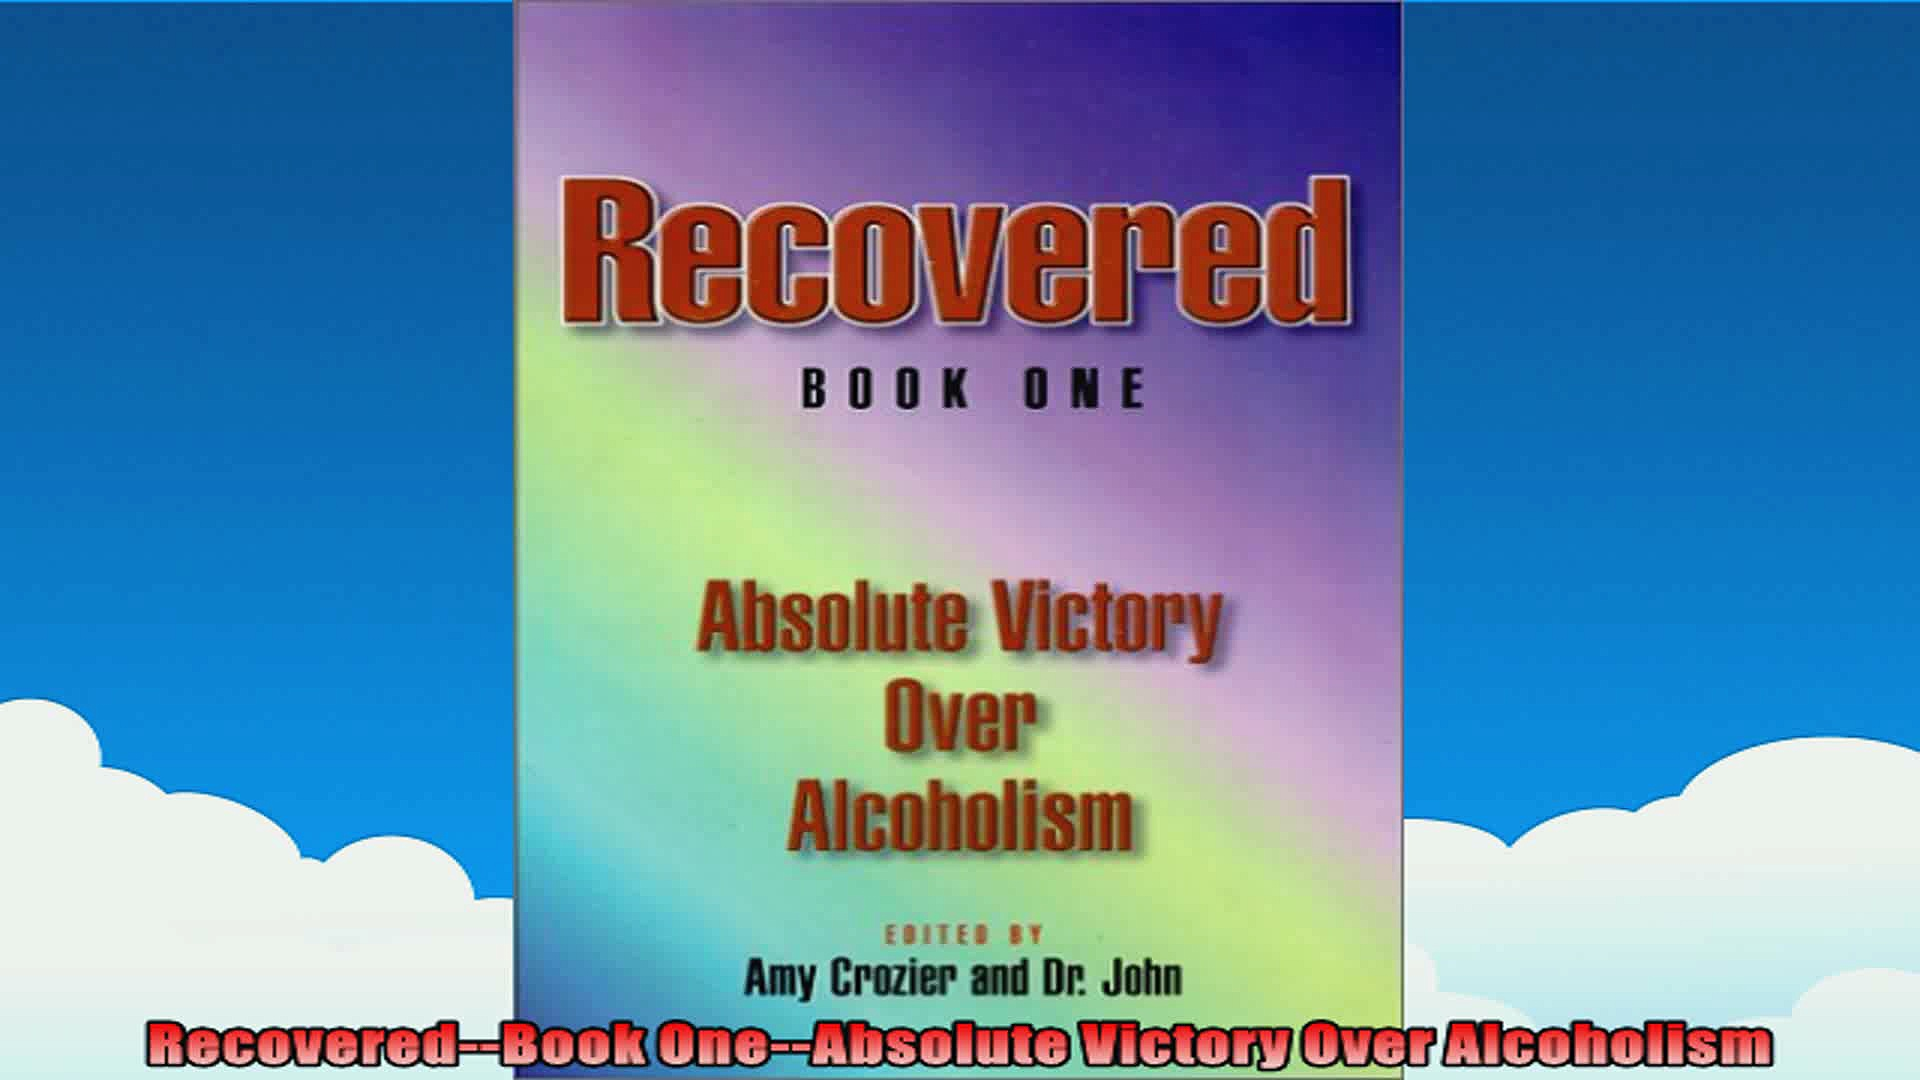 RecoveredBook OneAbsolute Victory Over Alcoholism